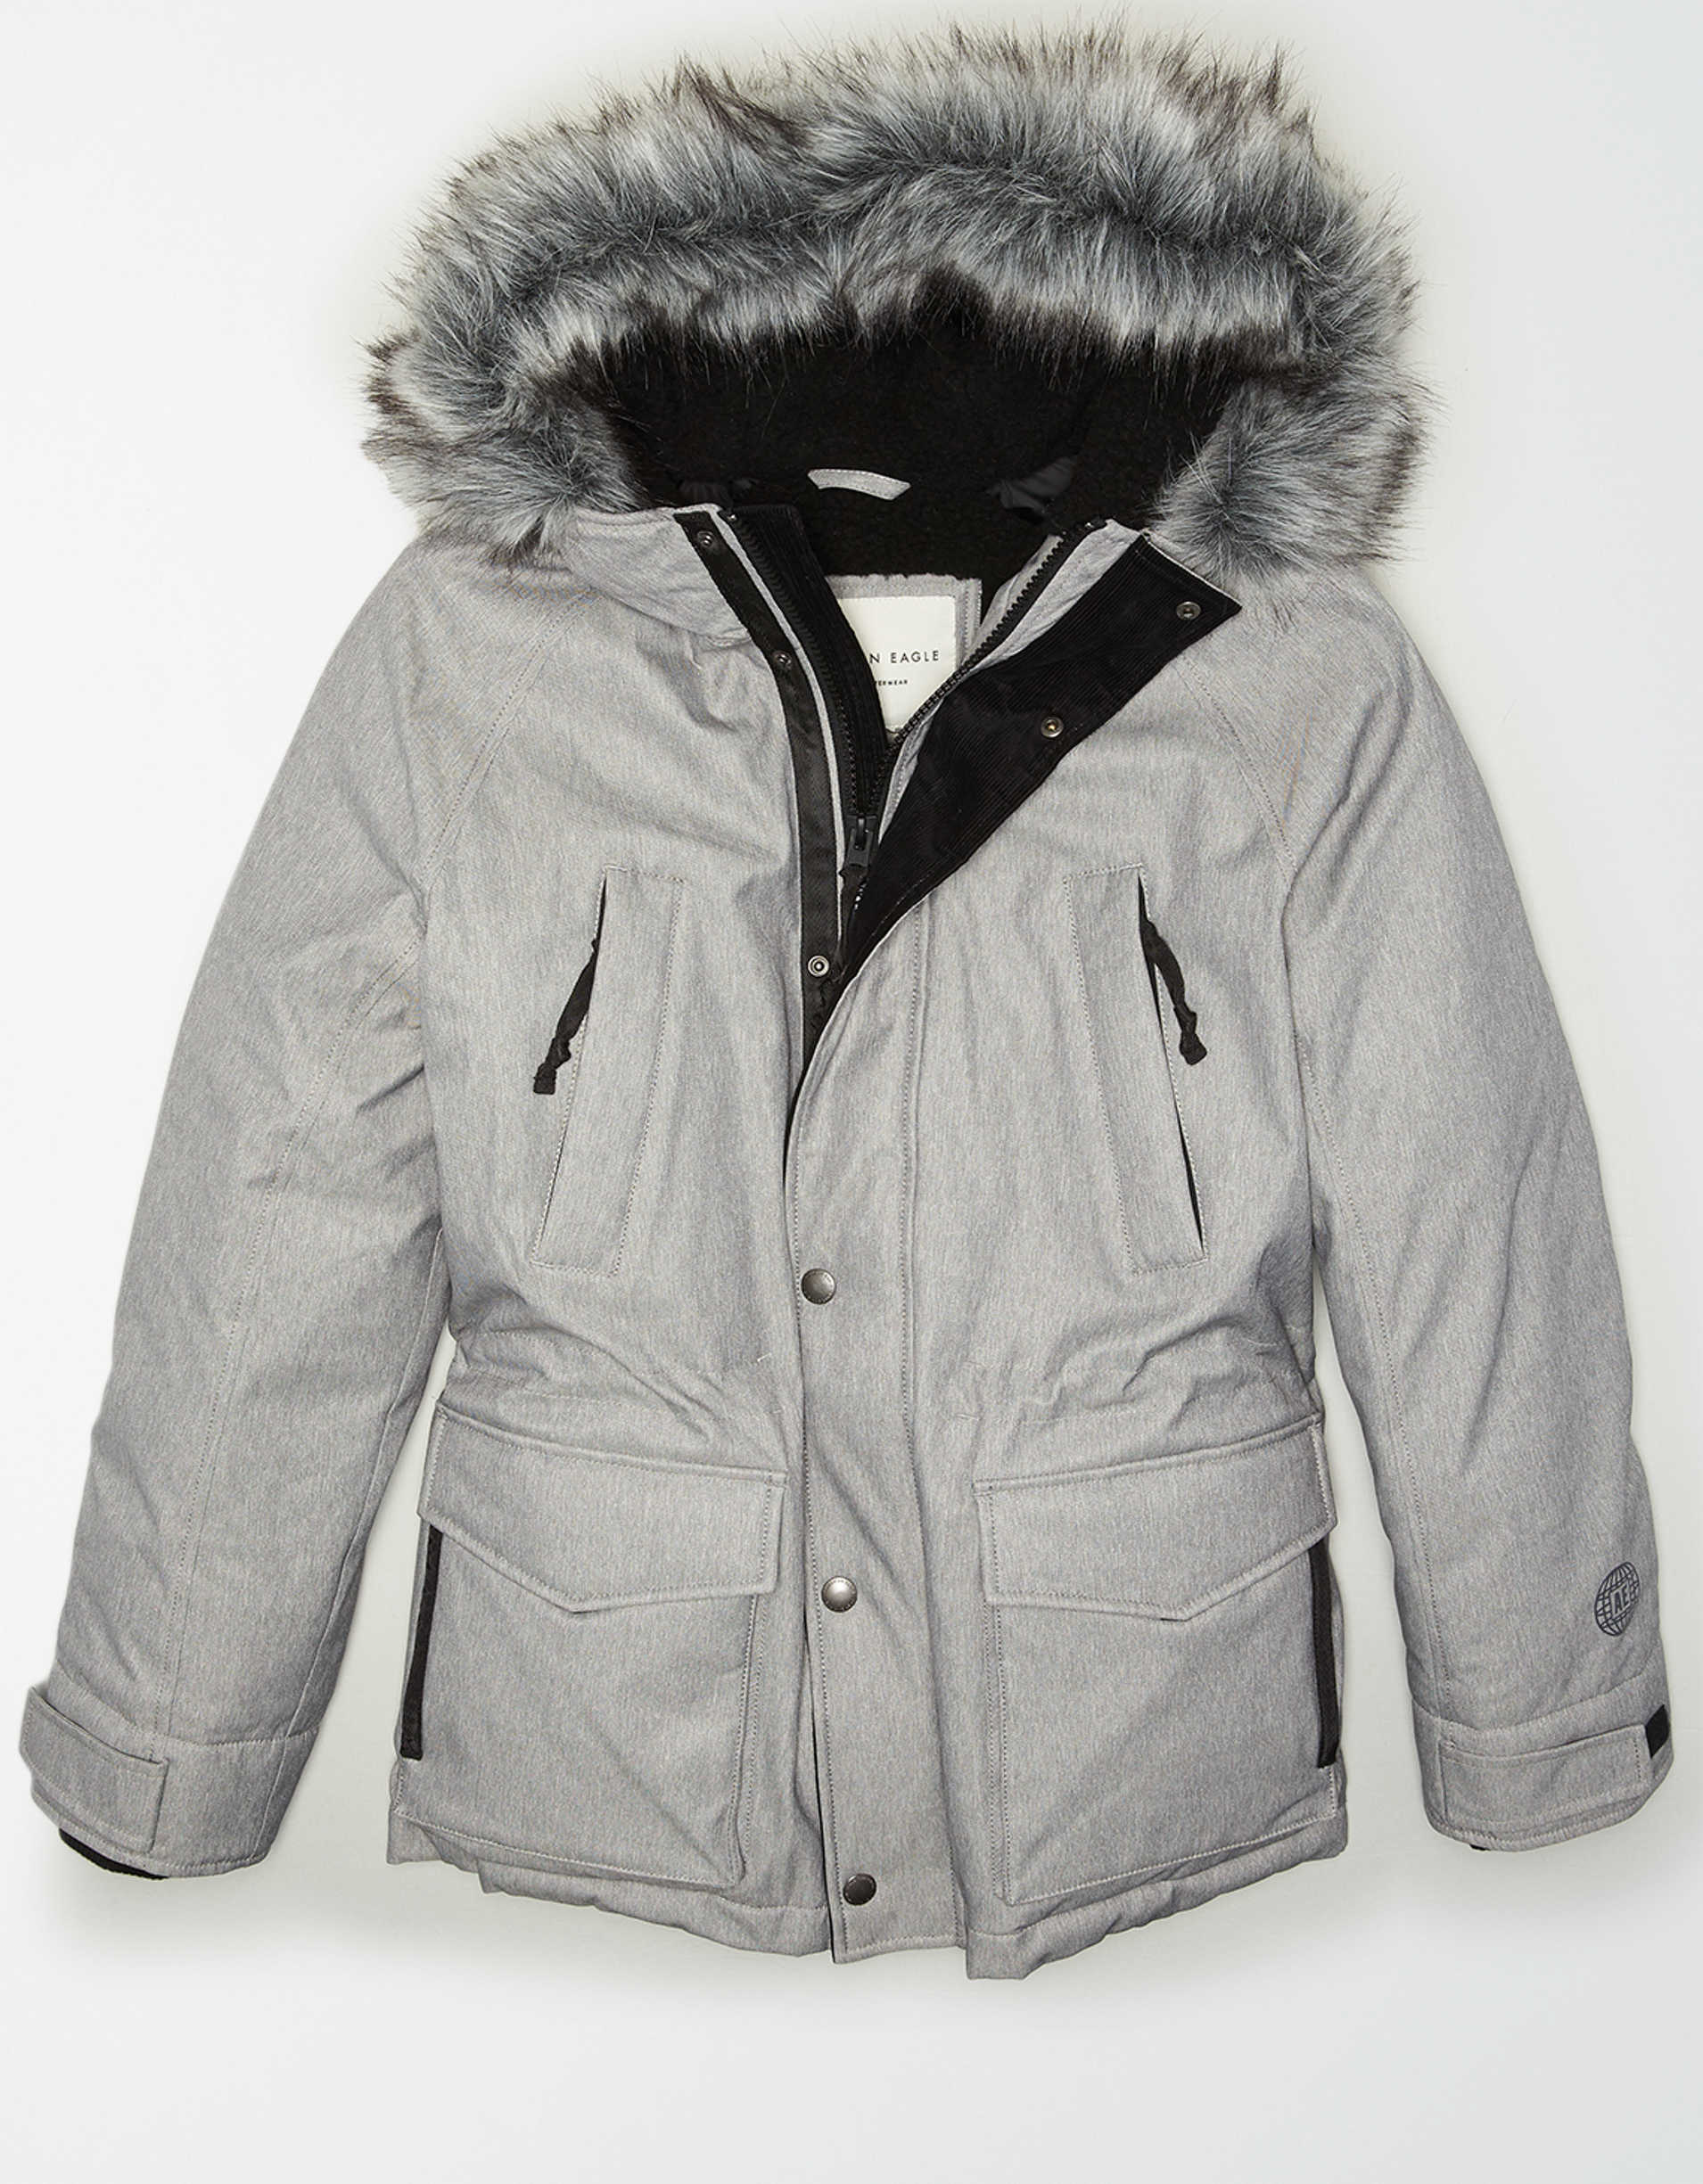 AE Fuzzy Sherpa Lined Expedition Parka